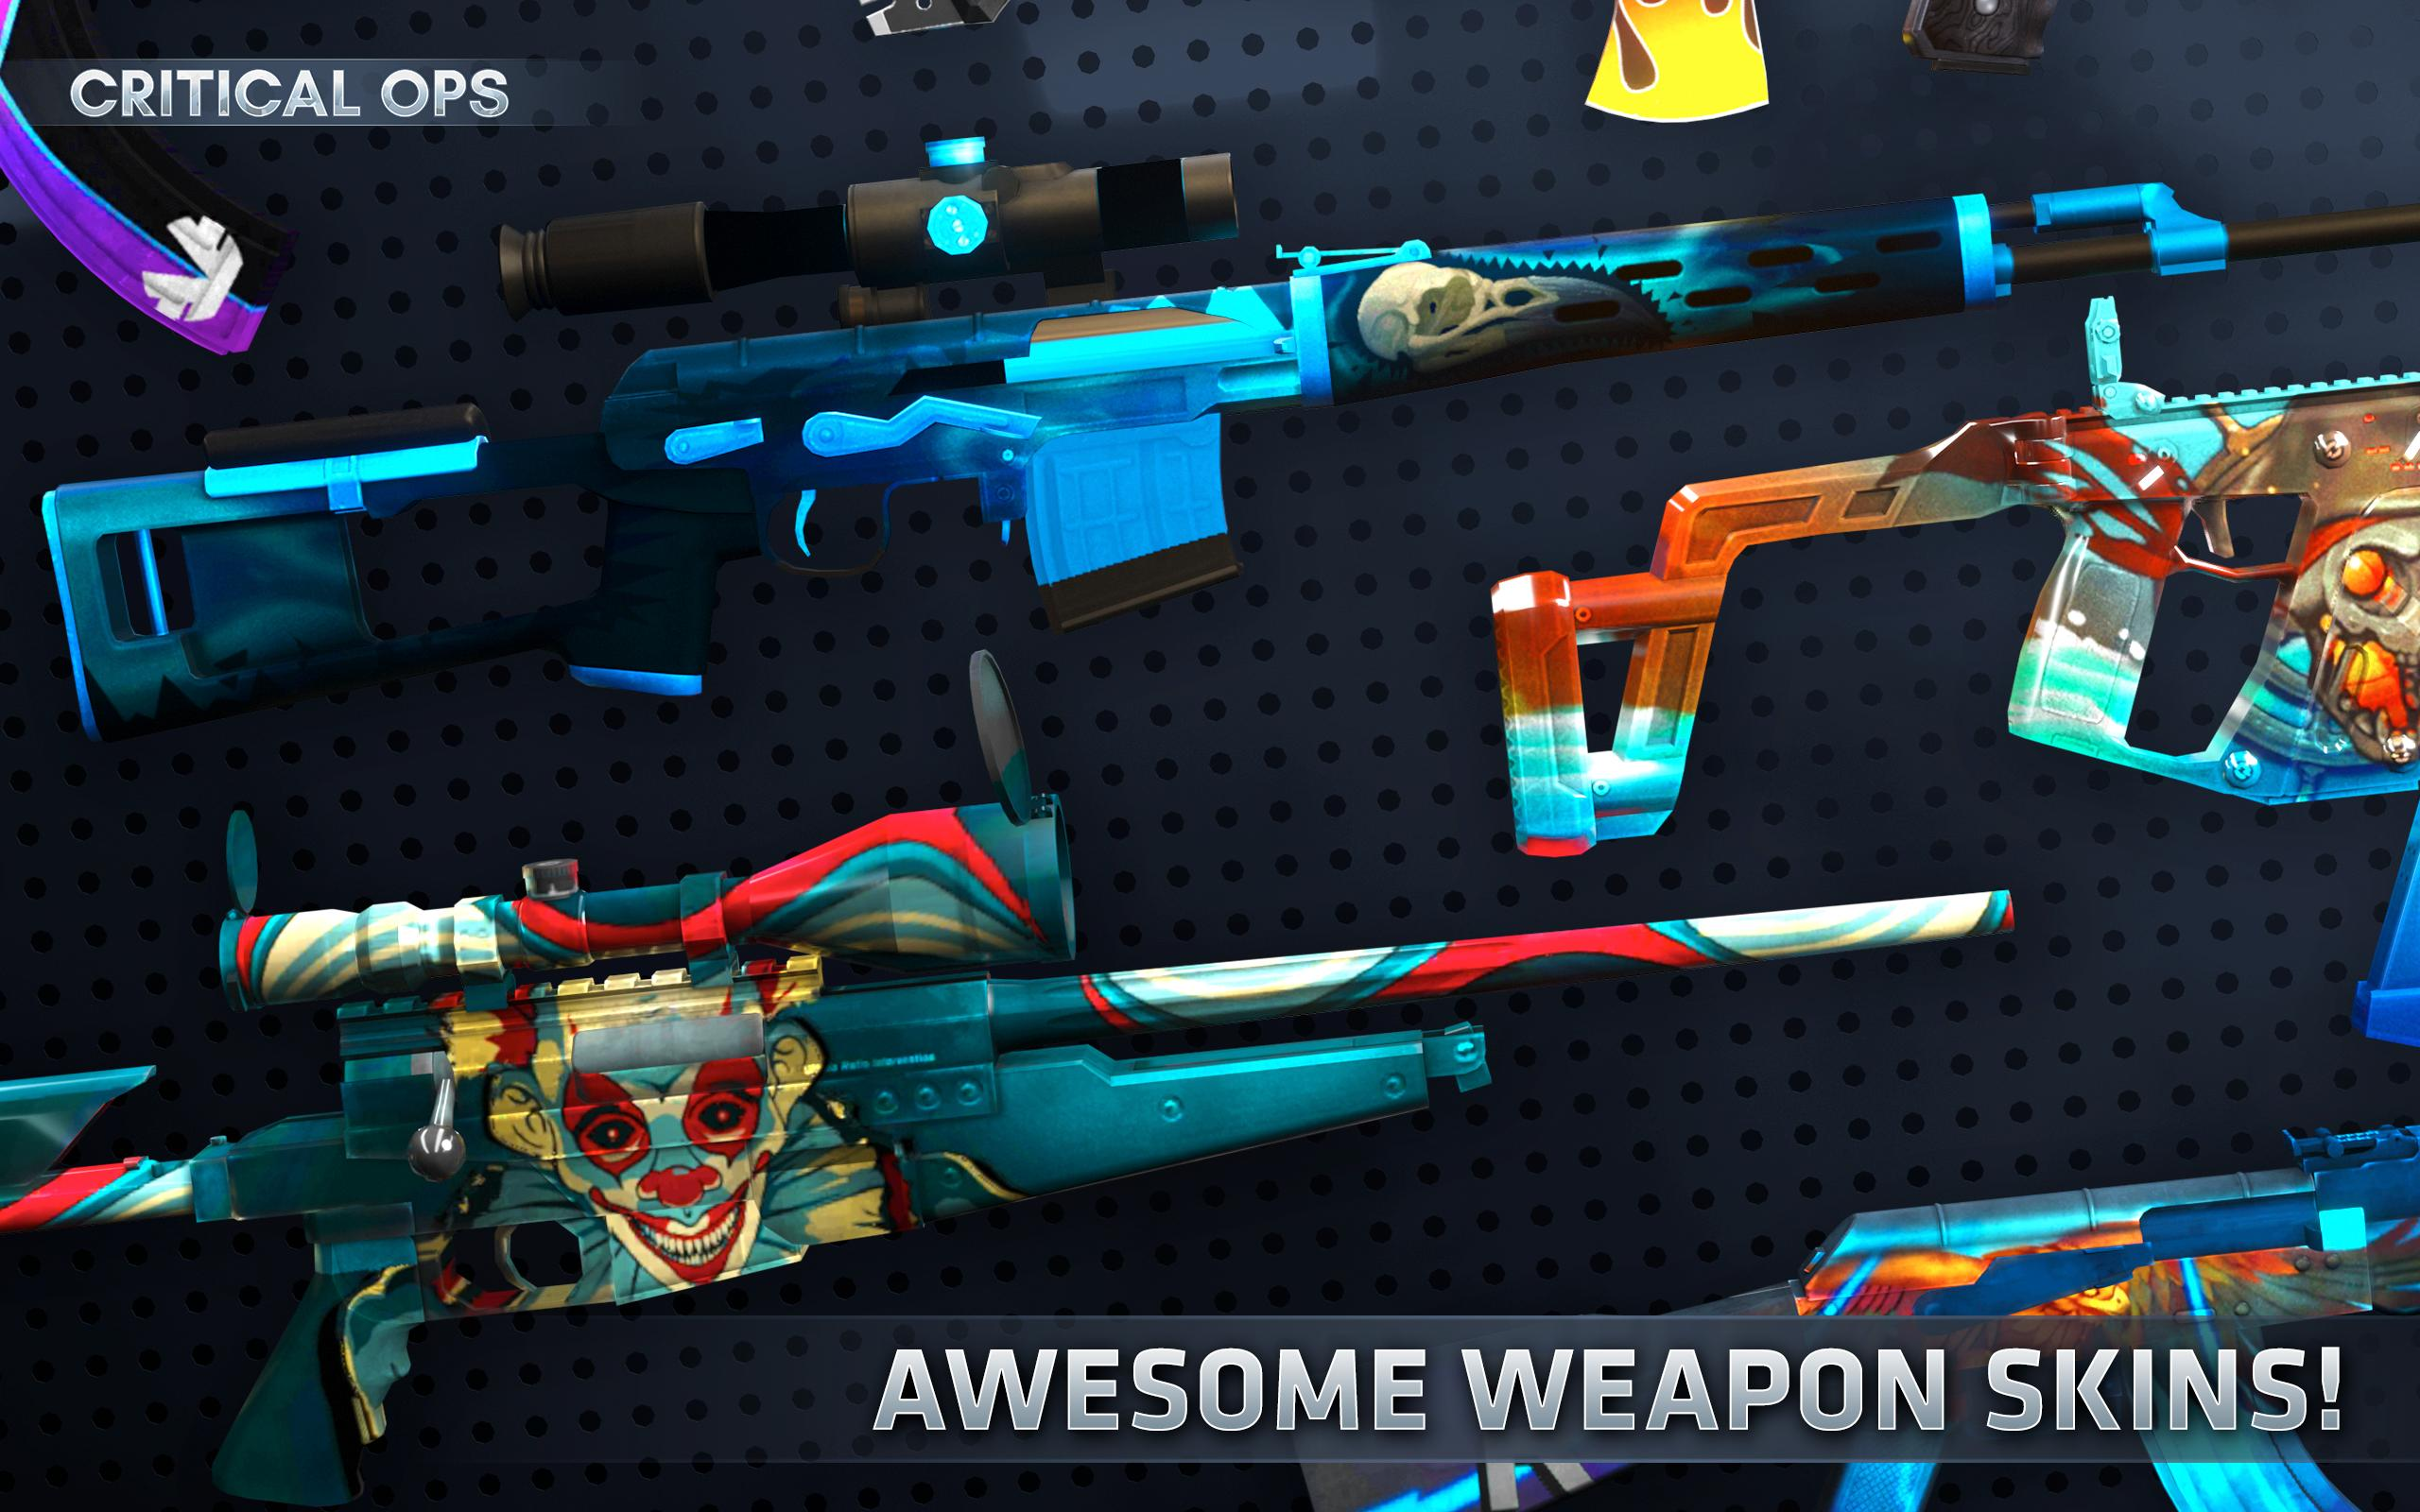 Critical Ops Weapons